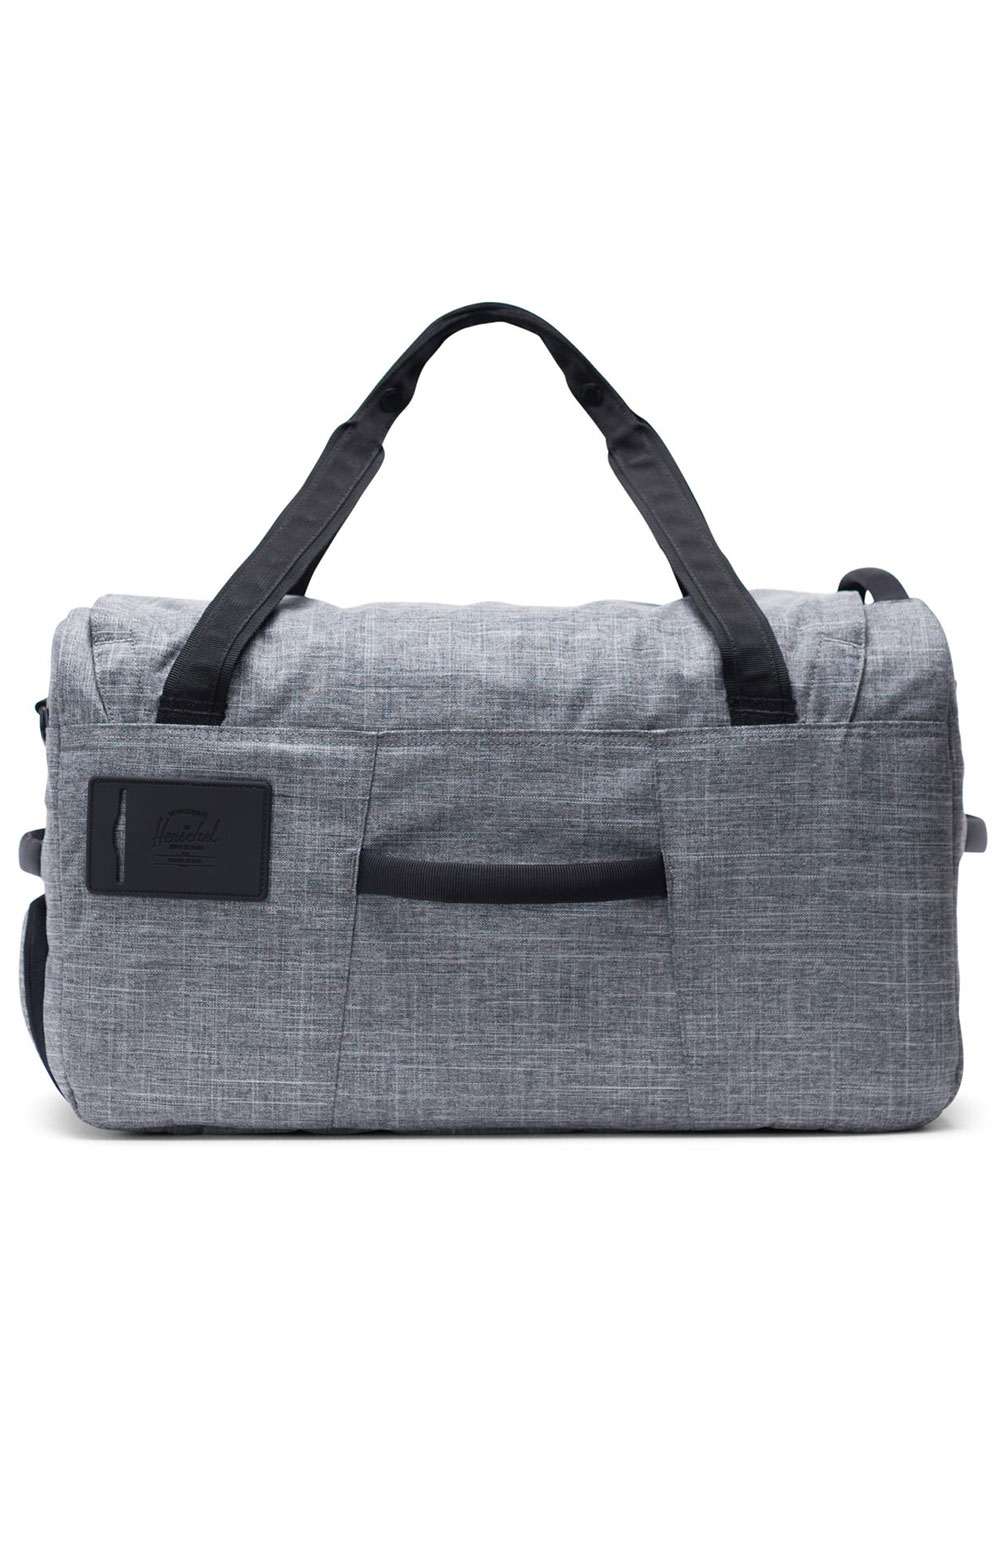 Outfitter Luggage 50L - Raven X  4